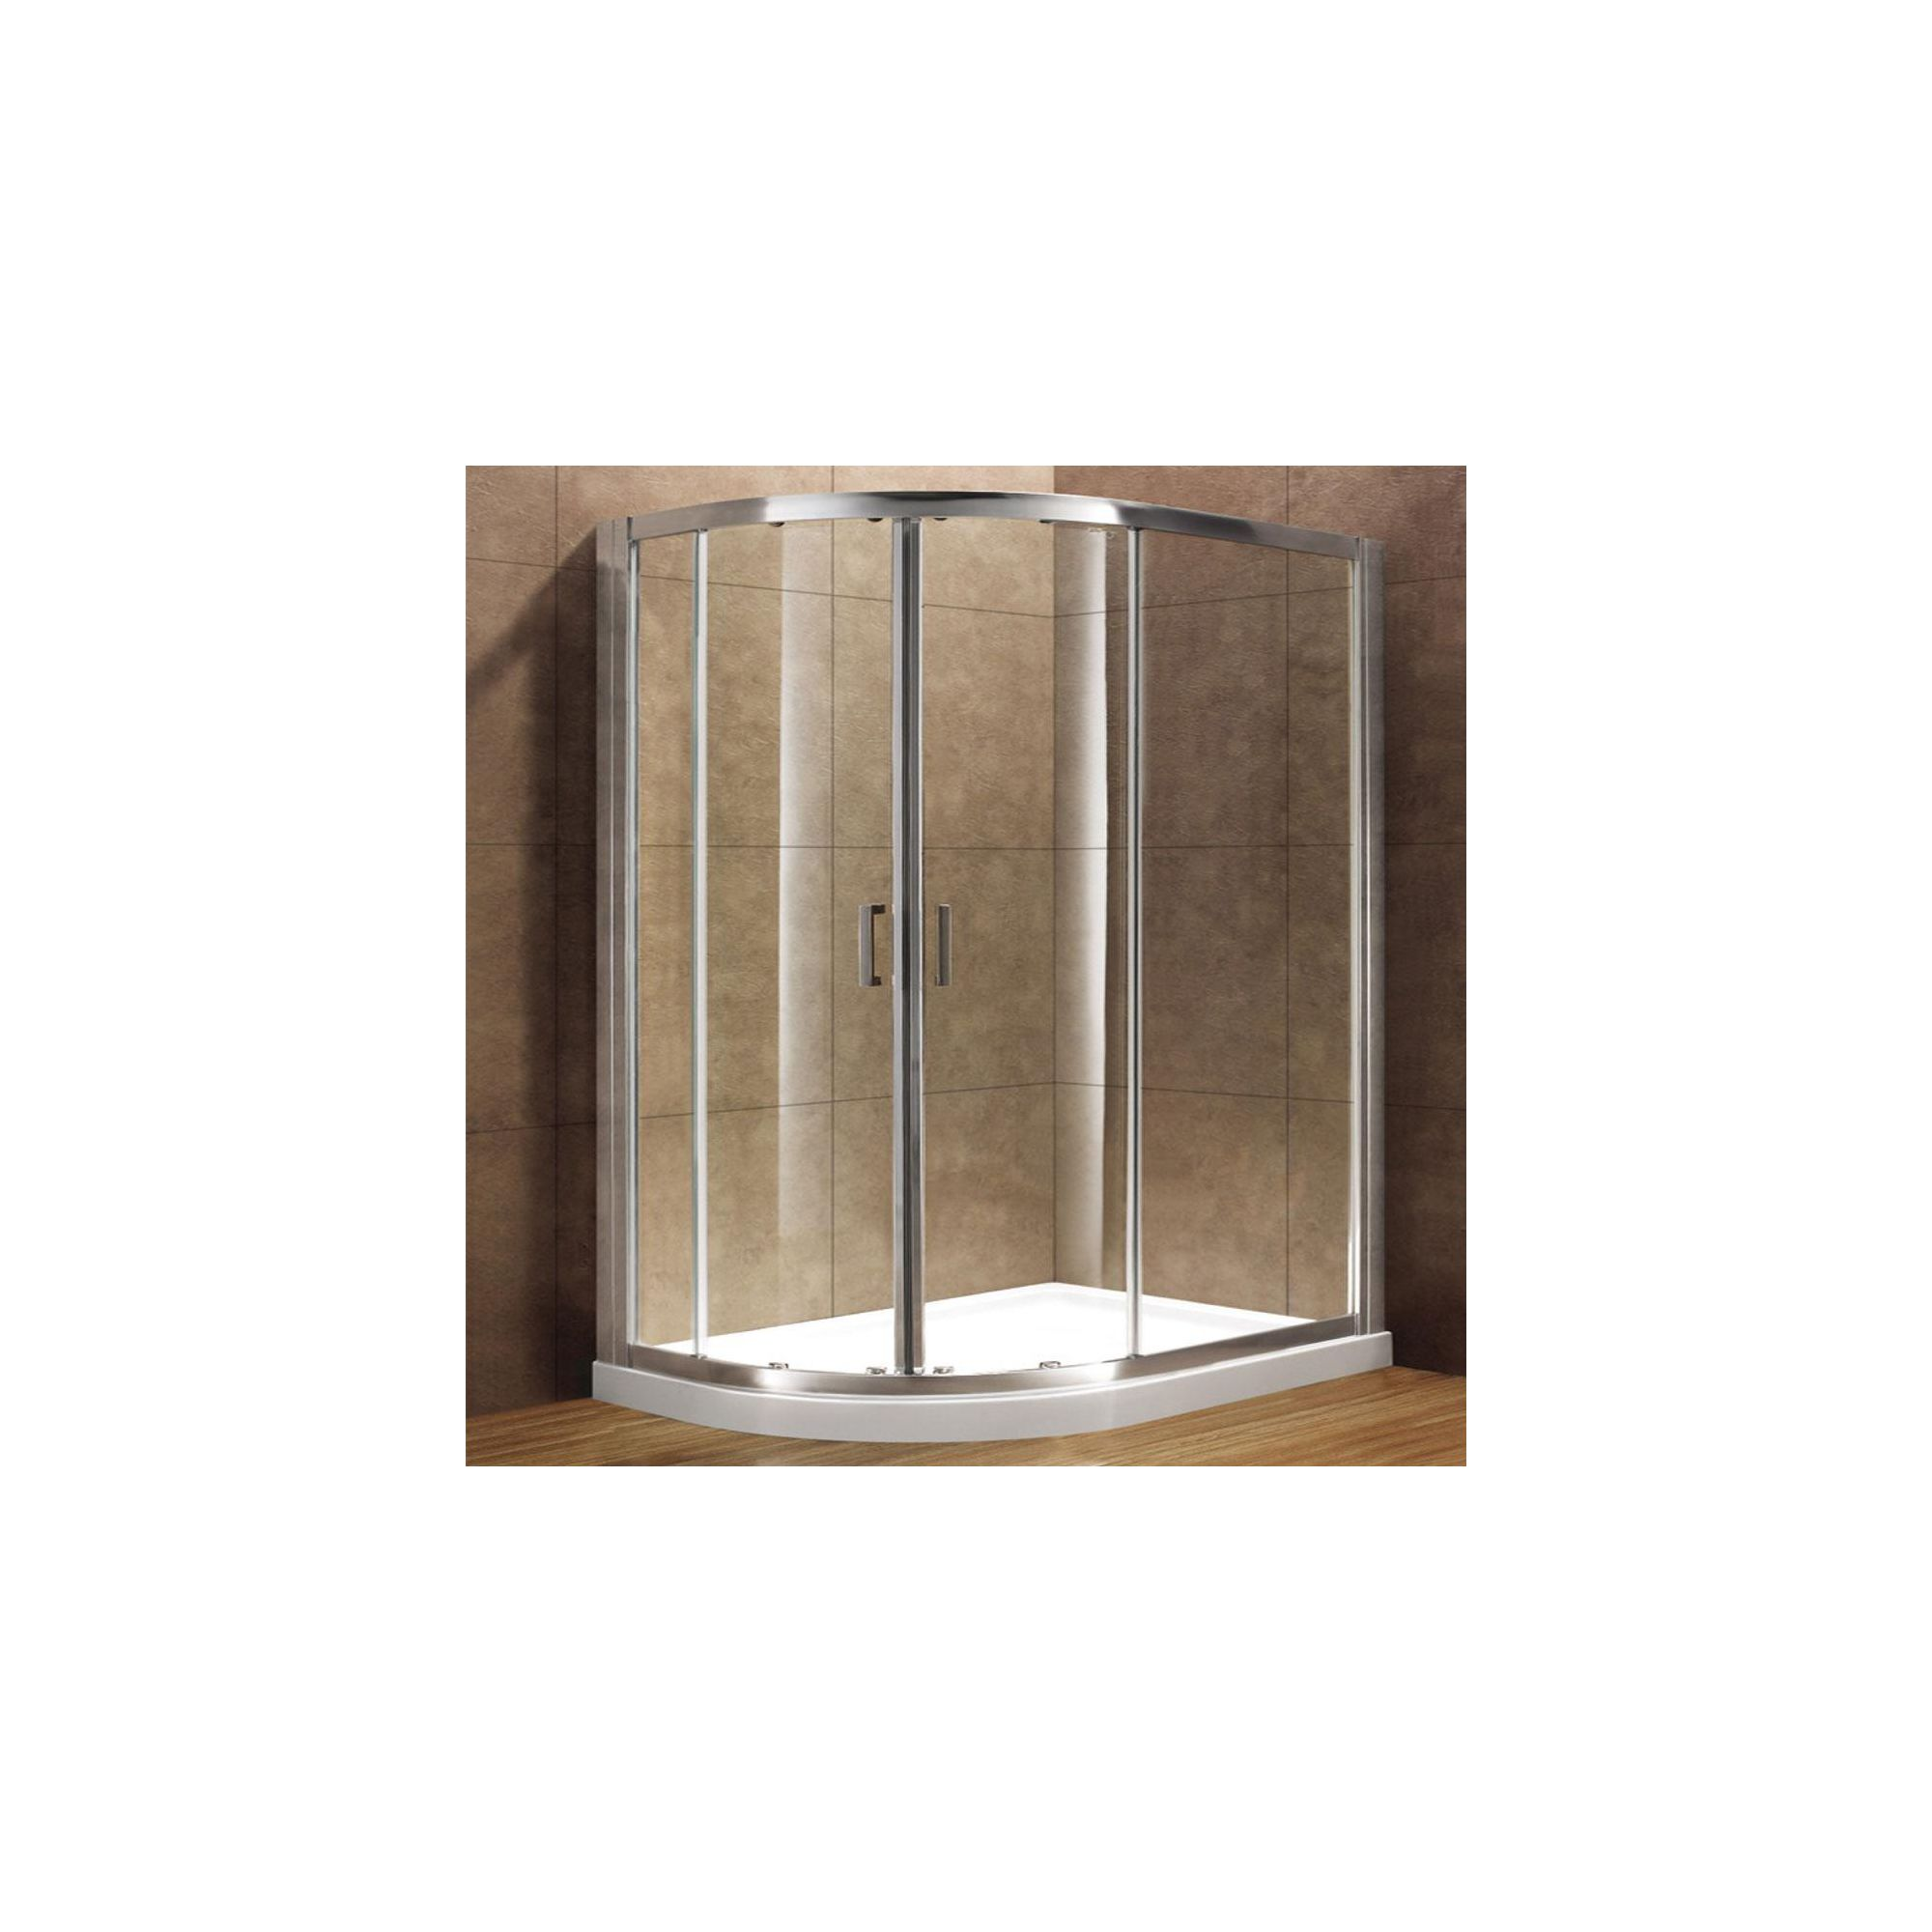 Duchy Premium Double Offset Quadrant Shower Door, 1200mm x 900mm, 8mm Glass at Tesco Direct